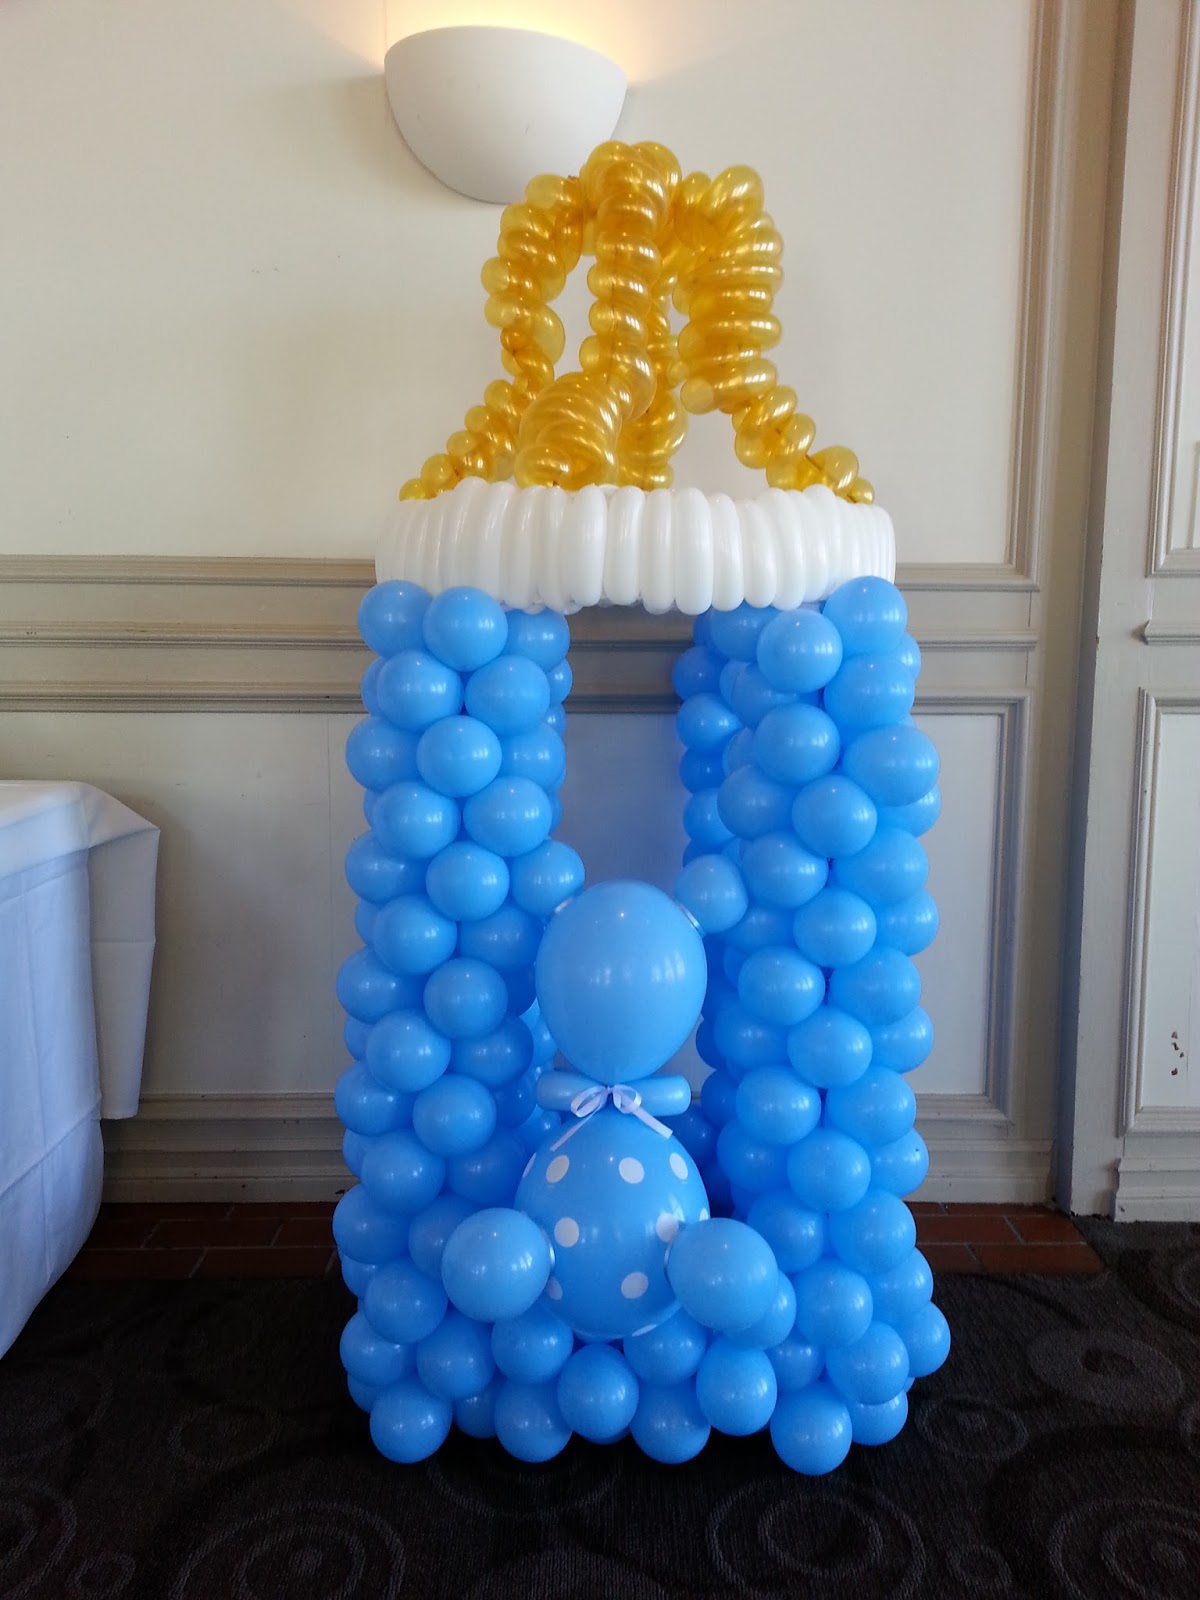 Balloon Decorations For Baby Shower | Party Favors Ideas